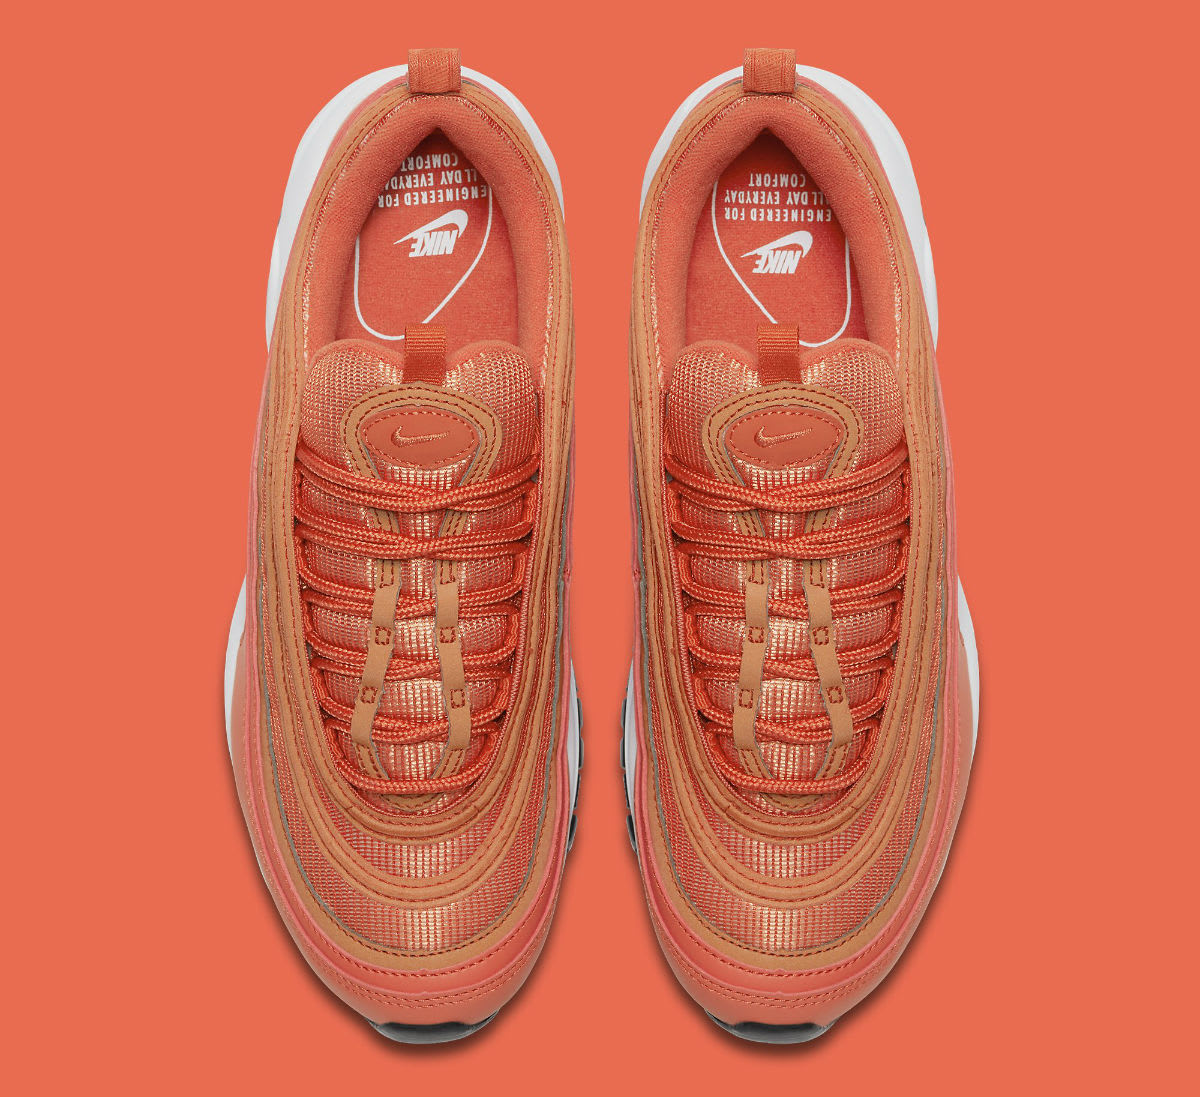 Nike Air Max 97 Safety Orange Release Date 921733-800 Top